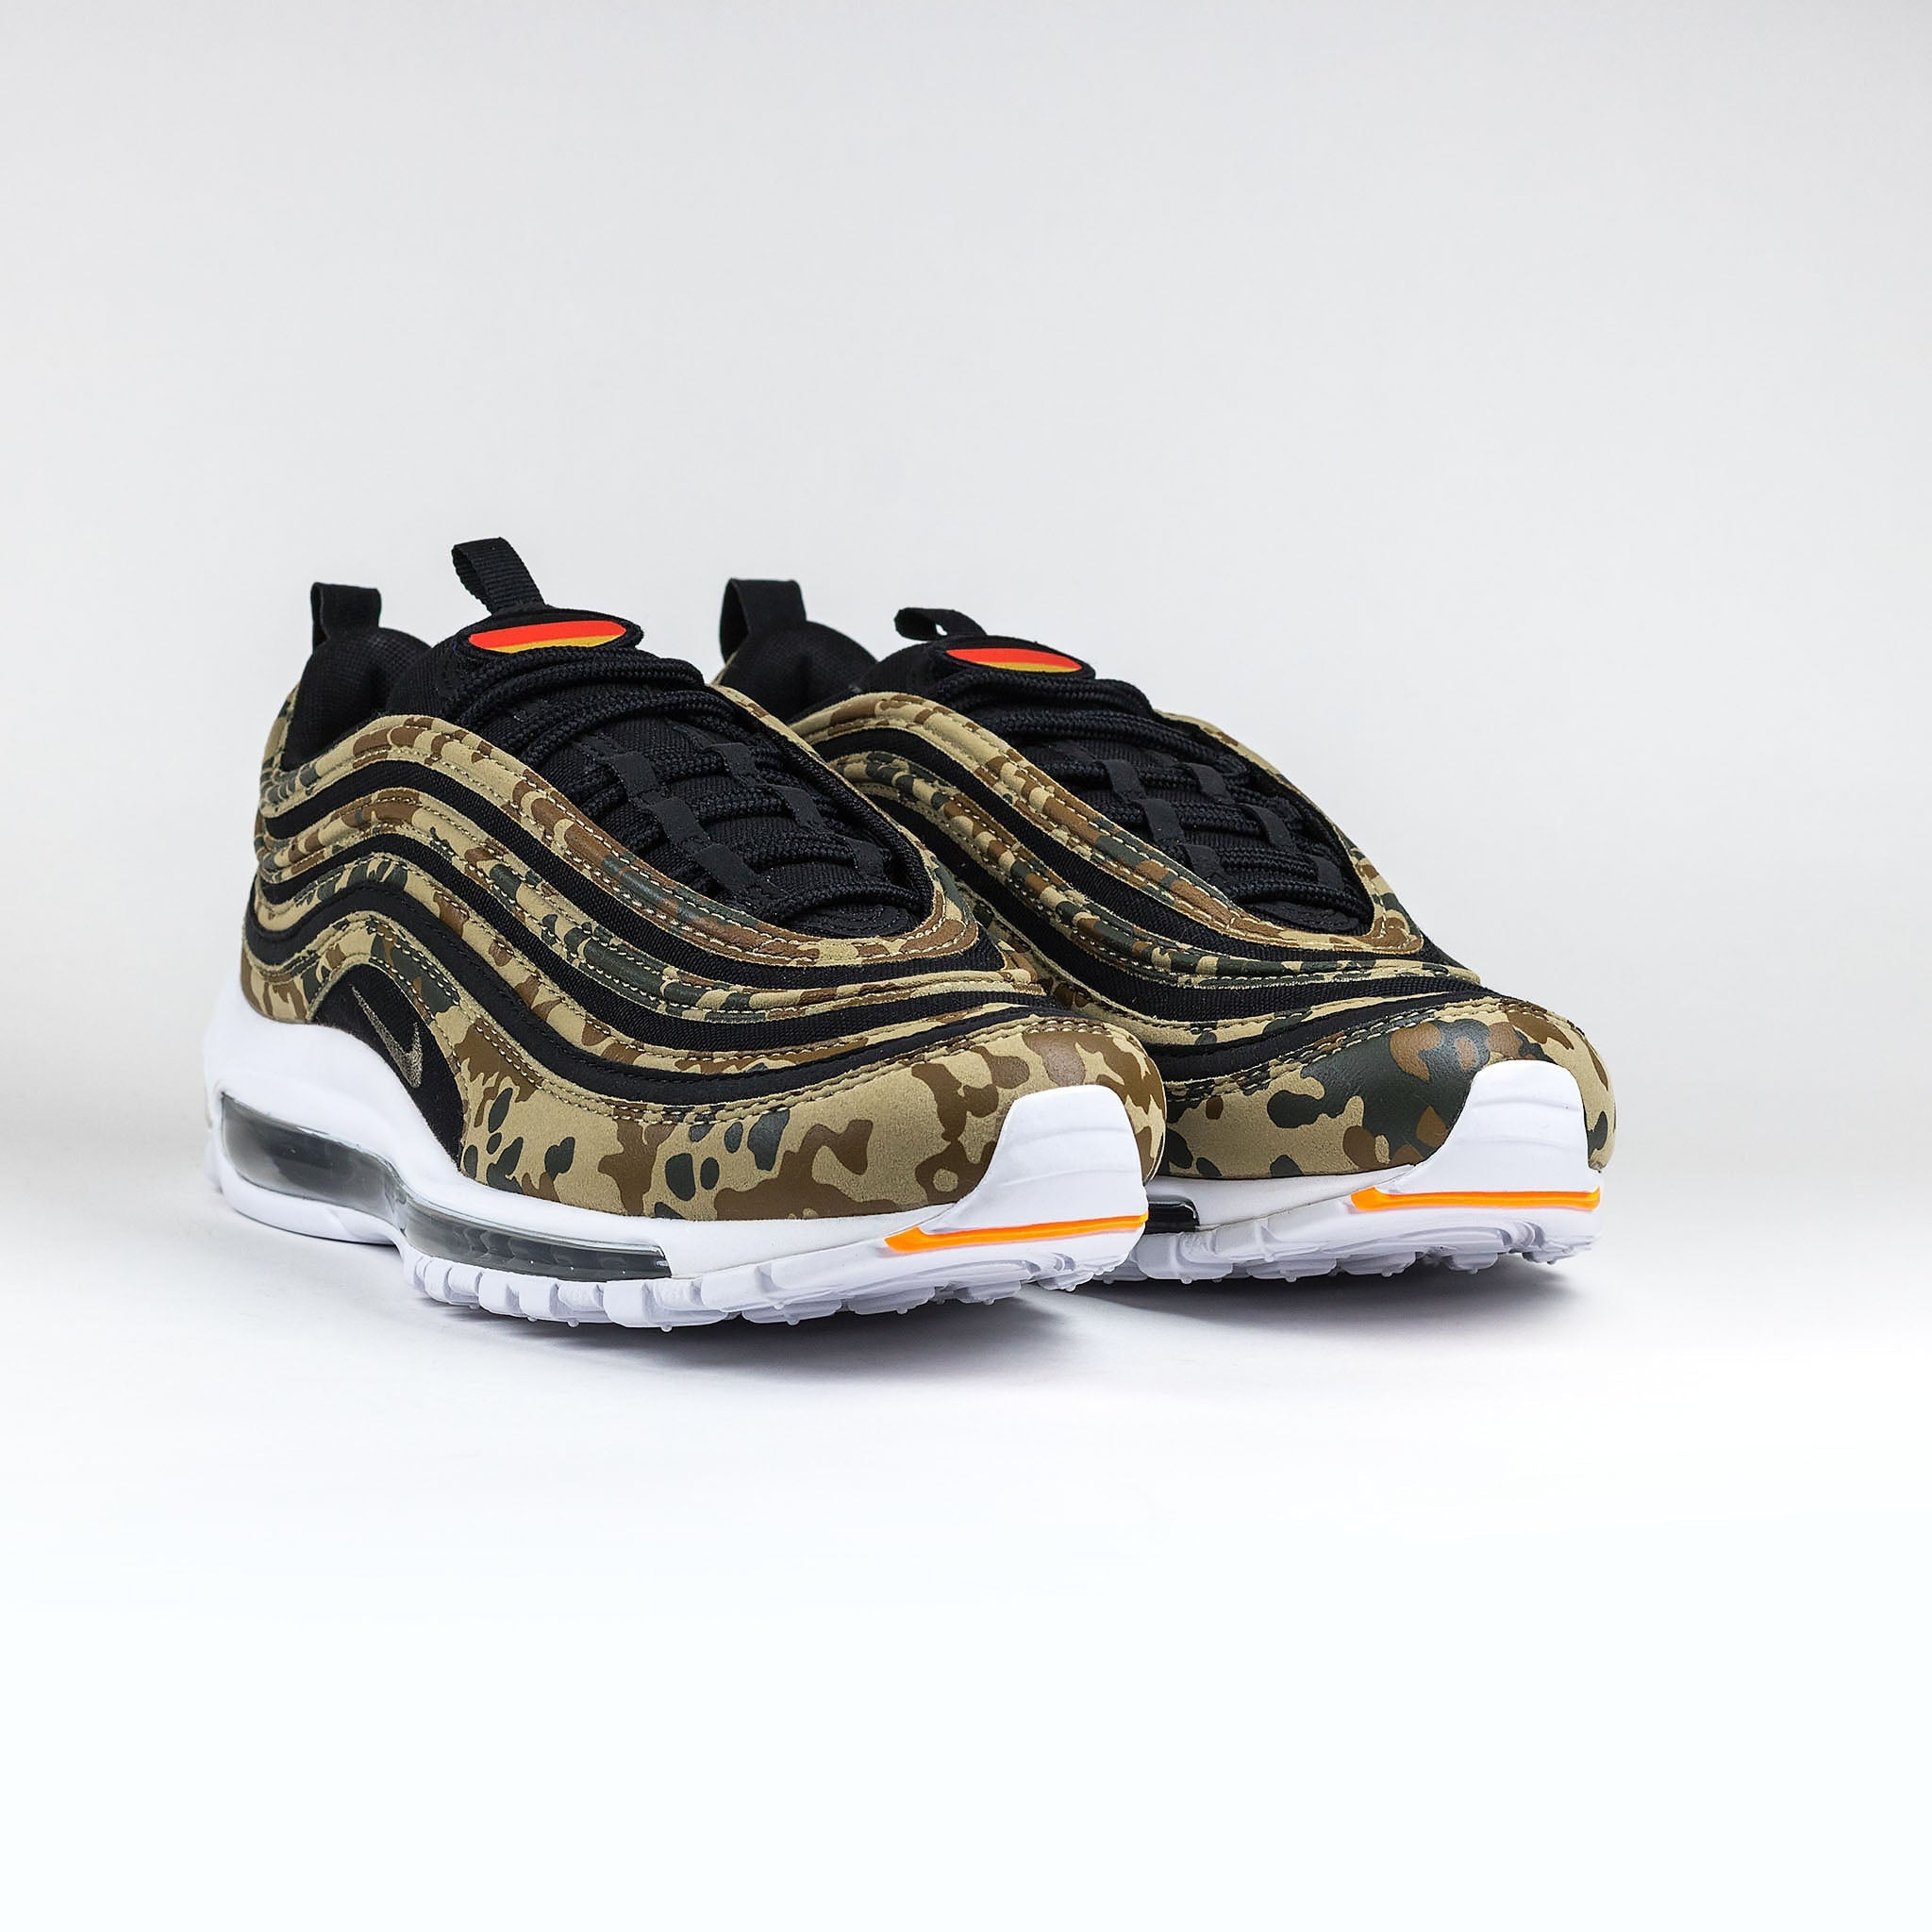 Country Camo Nike Germany Airmax 97 PZkXiu